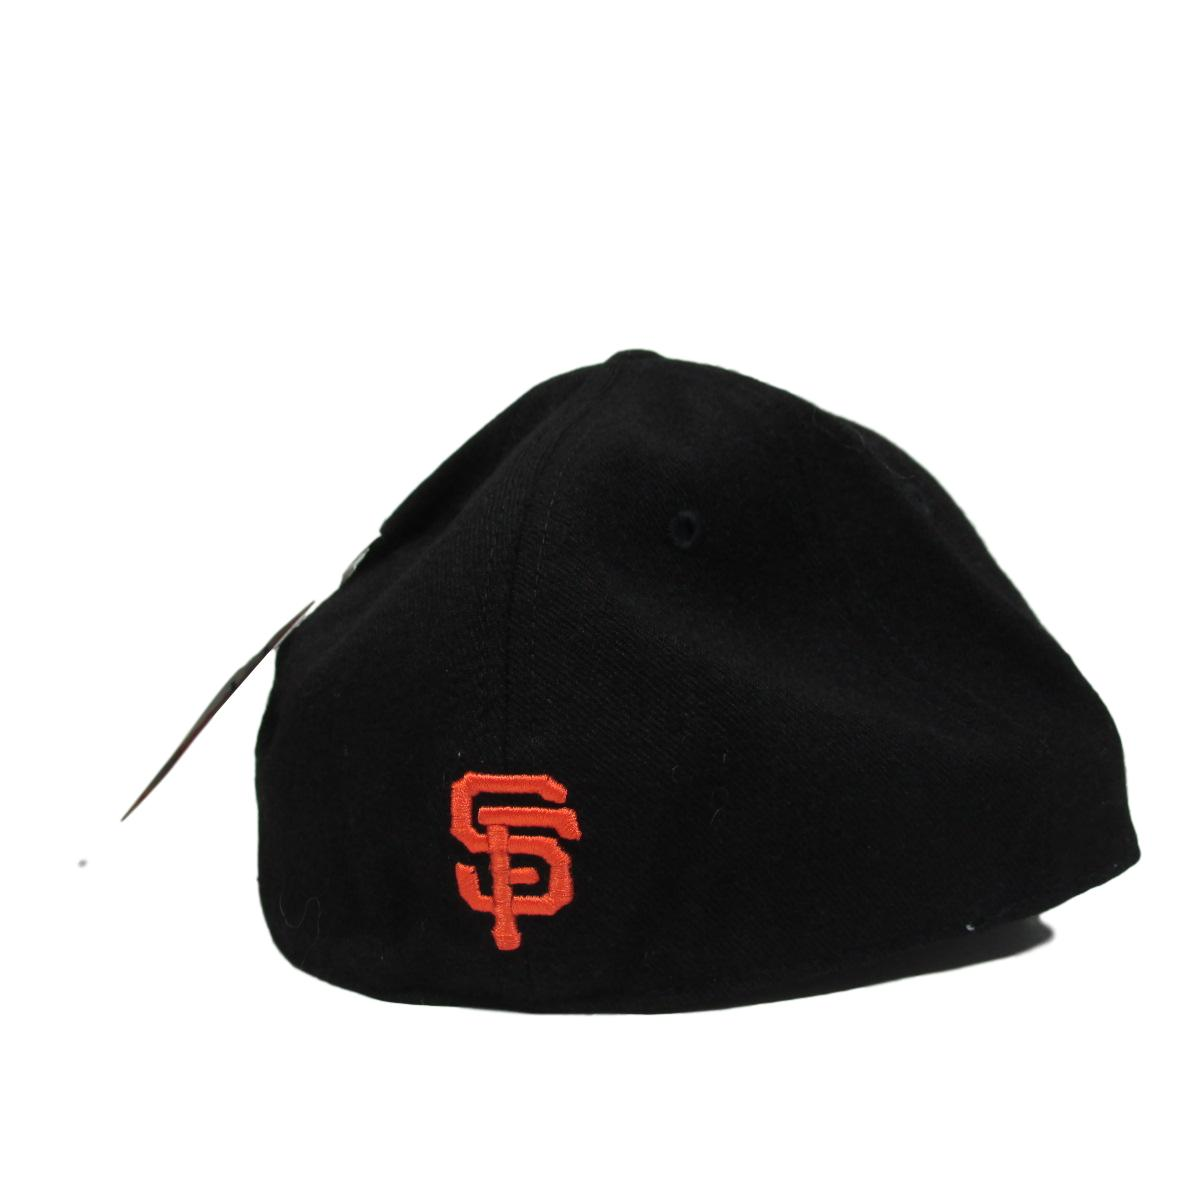 San Francisco Giants Deadstock Fitted Baseball Hat 7 1/4 Sports Specialties